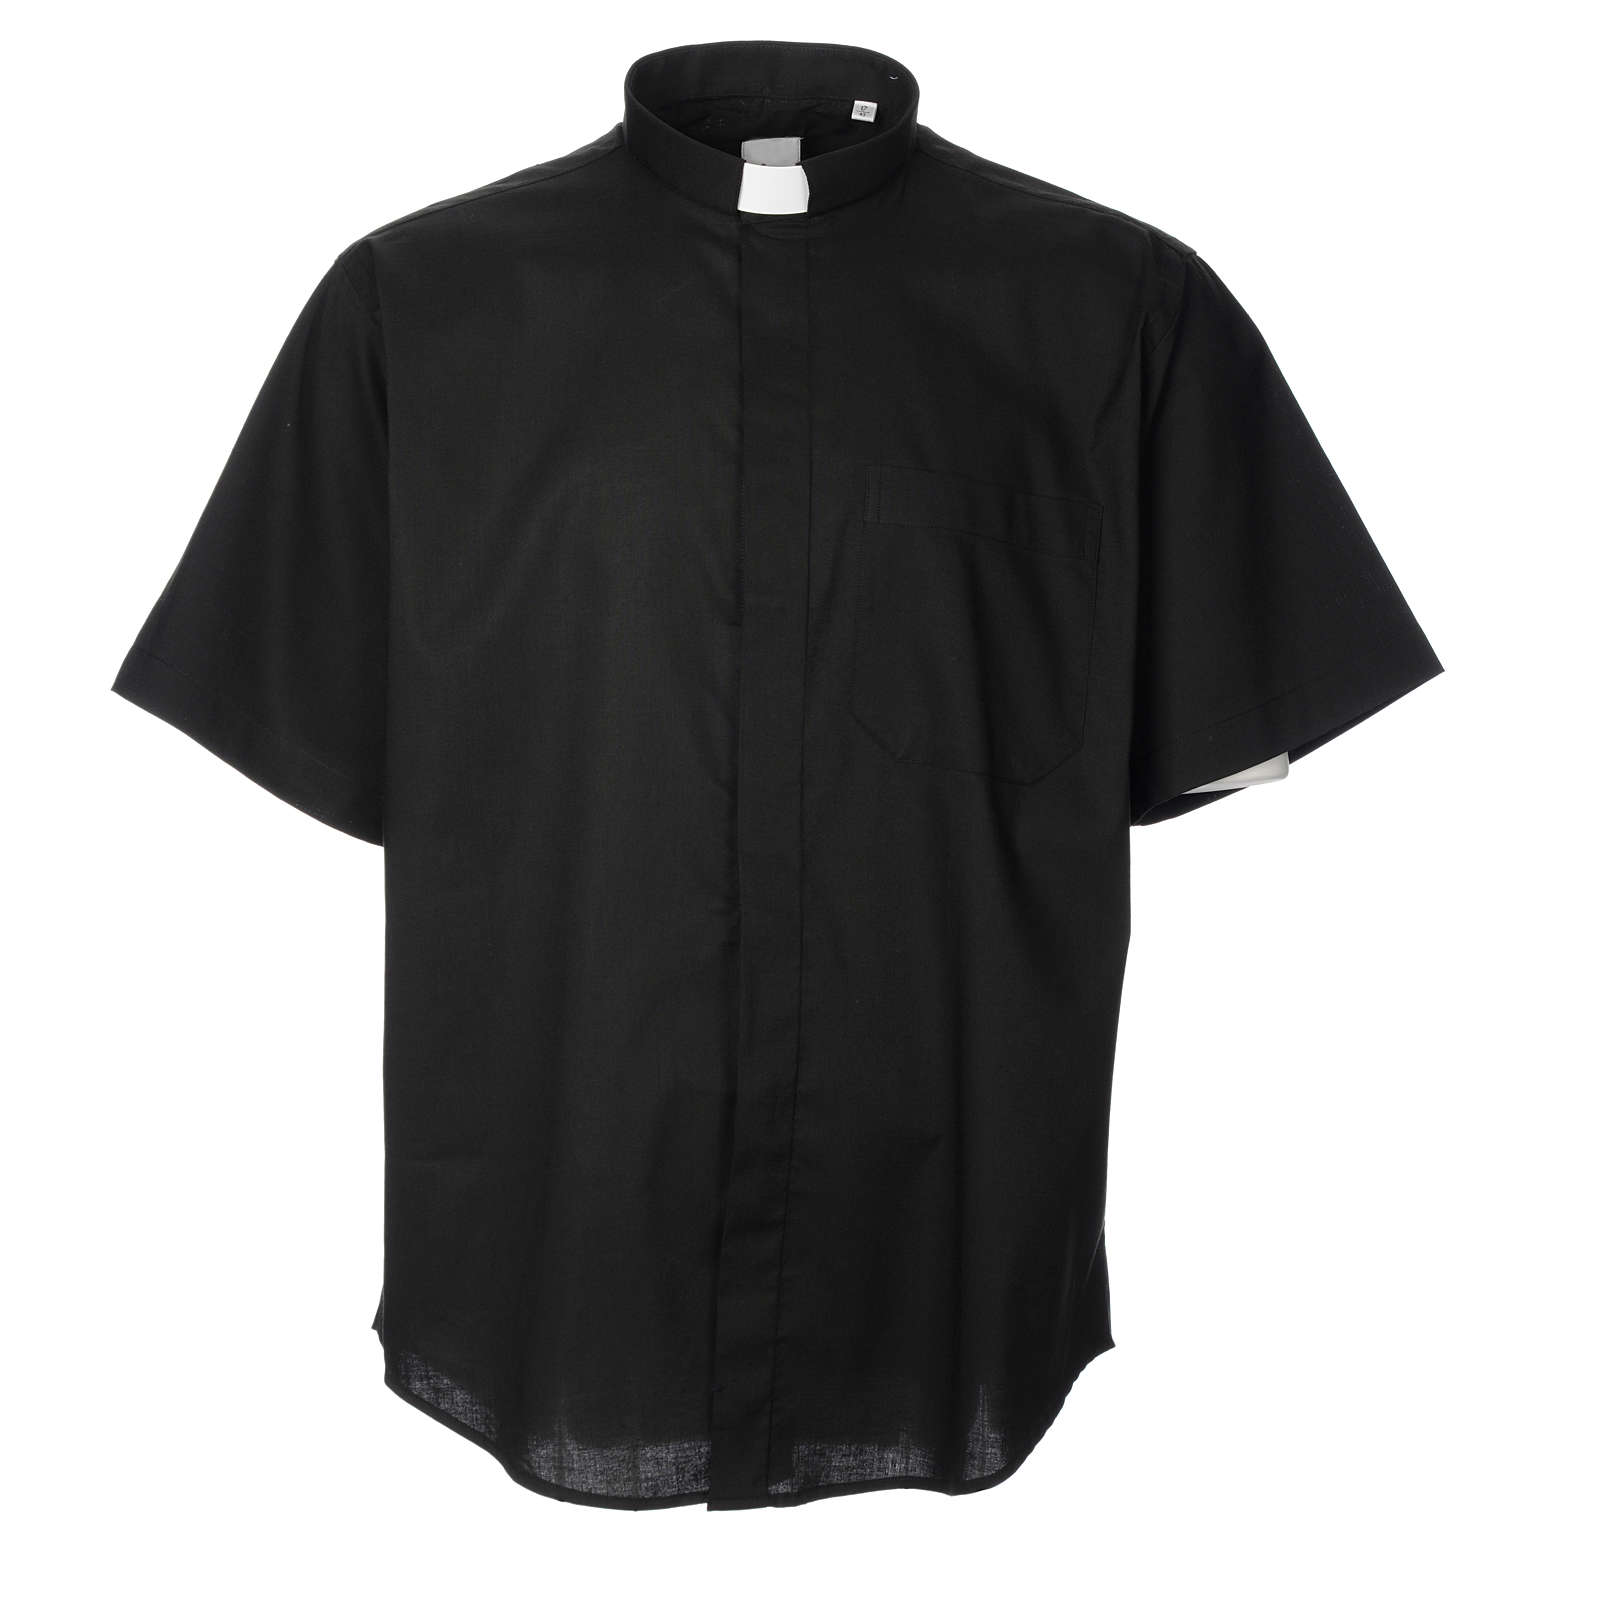 STOCK Clergy shirt, short sleeves in black mixed cotton 4